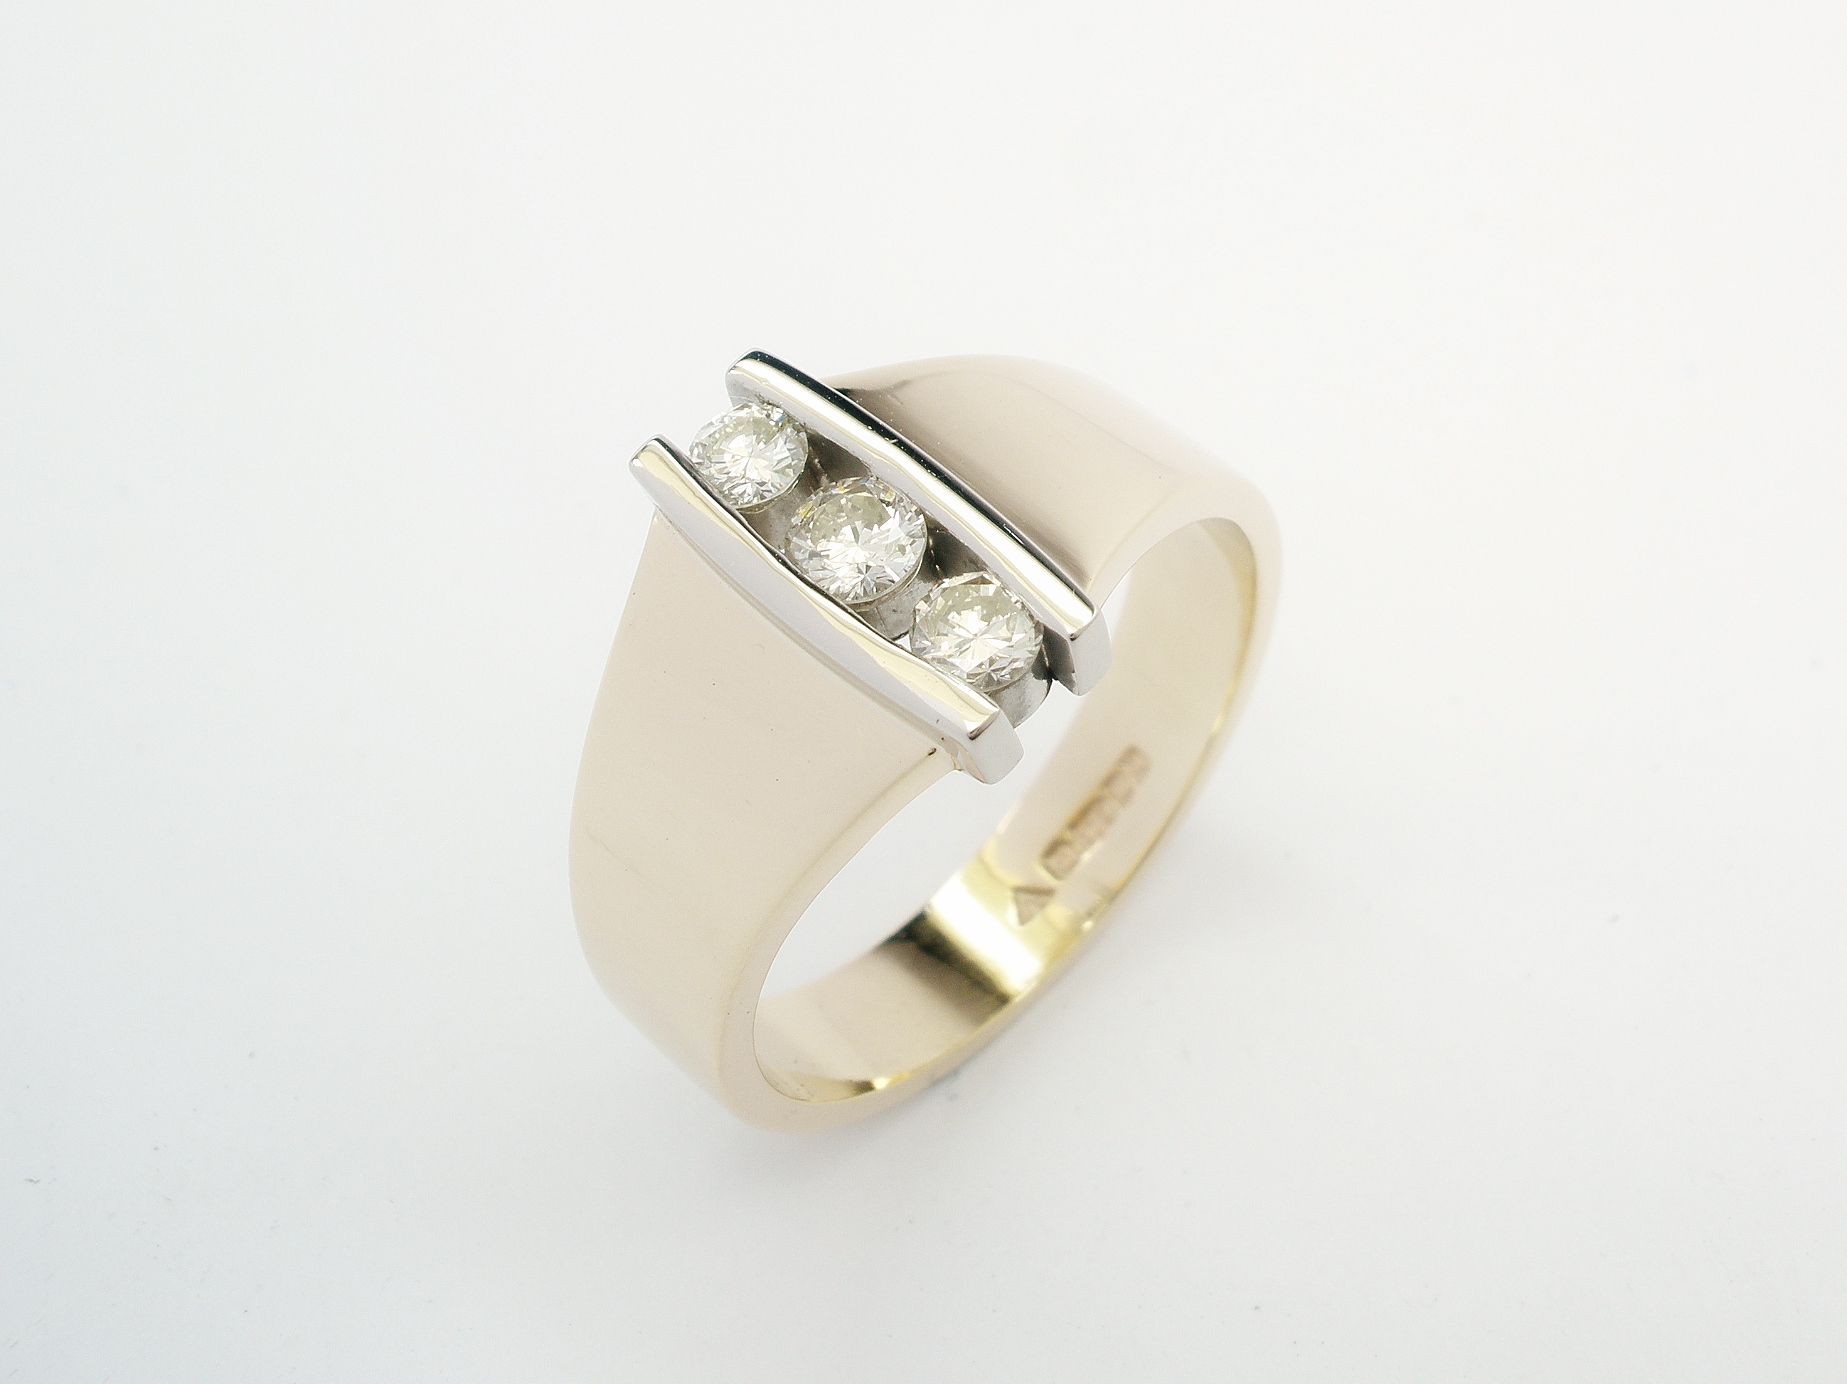 3 stone round brilliant cut diamond vertically channel set 18ct. yellow gold and platinum ring.